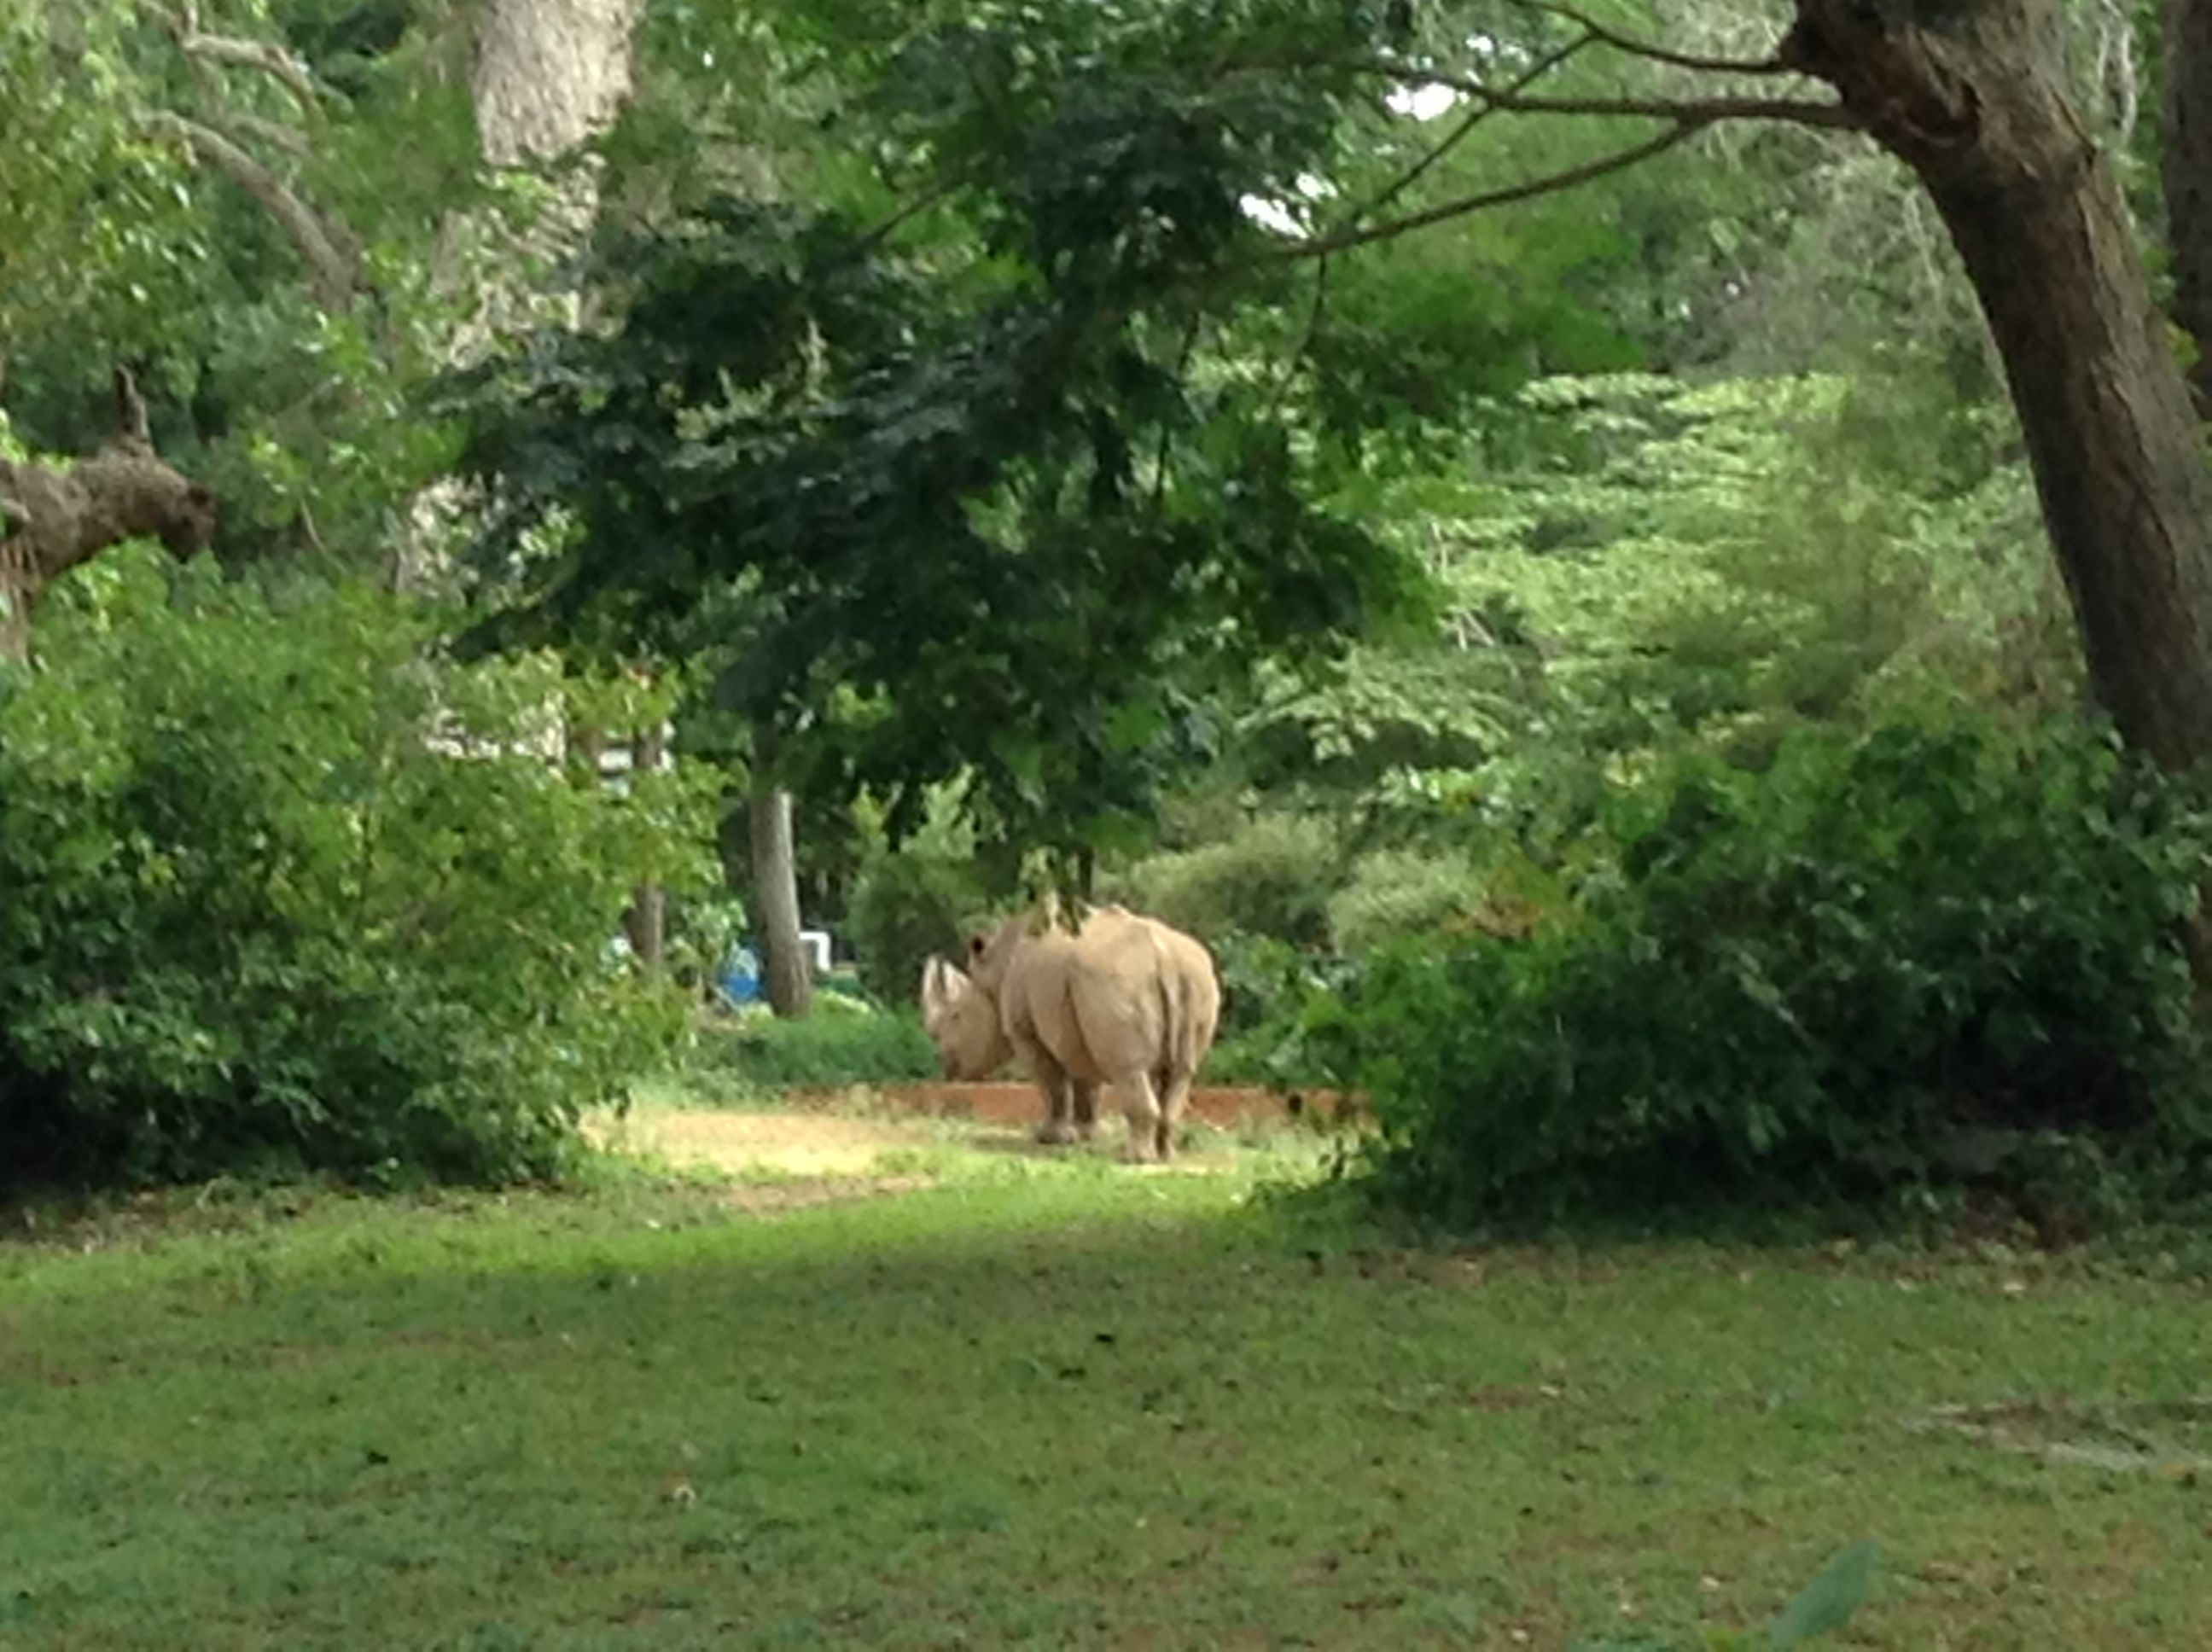 c12229f3be34a0c1ae2c3da0ff2040c0 - Mysore Zoo Sri Chamarajendra Zoological Gardens